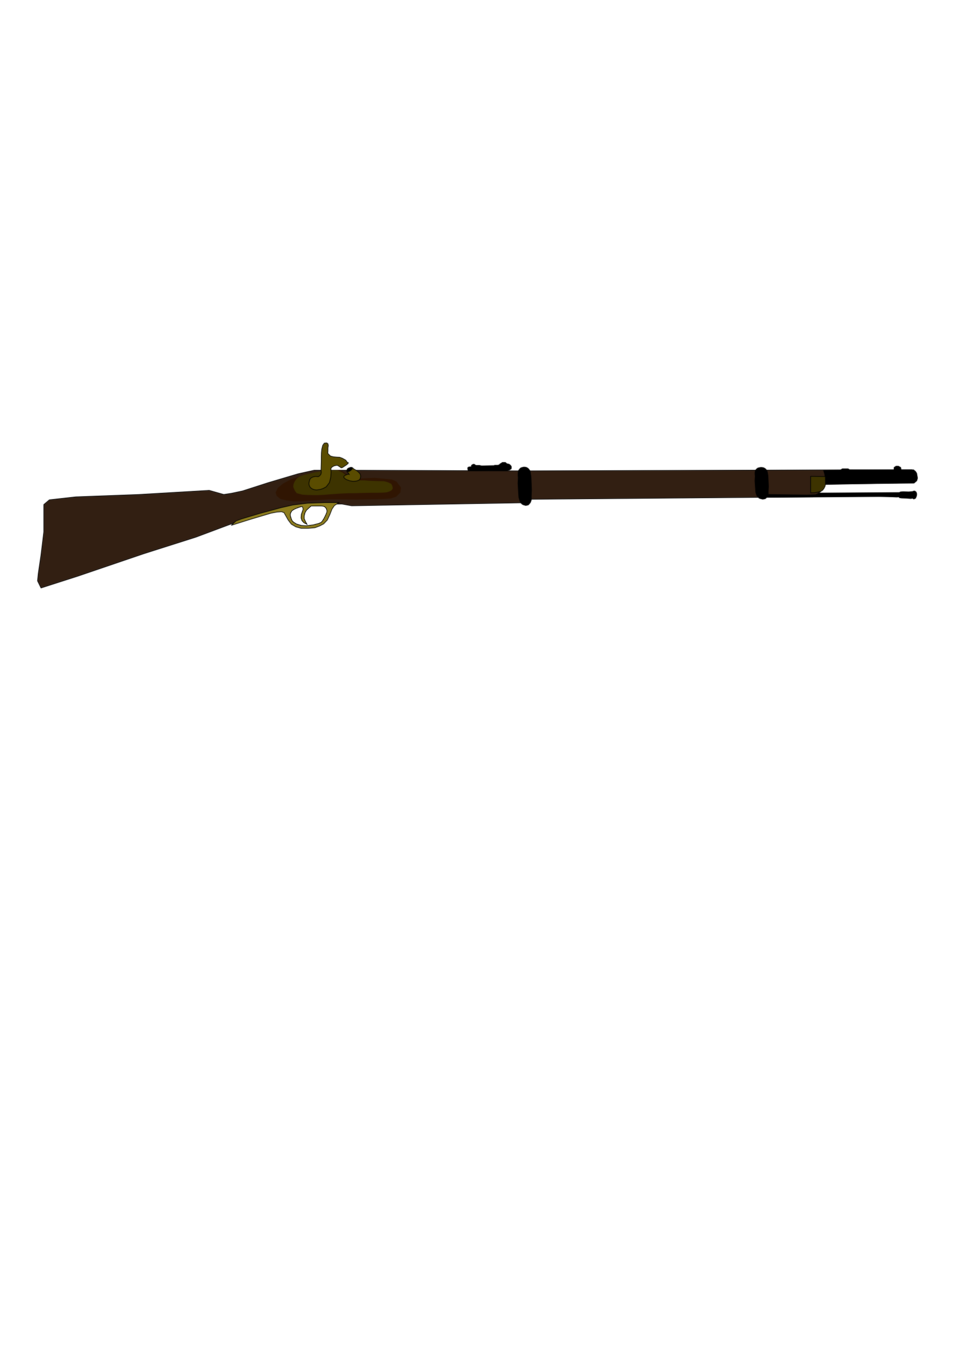 Musket vector used. Public domain clip art